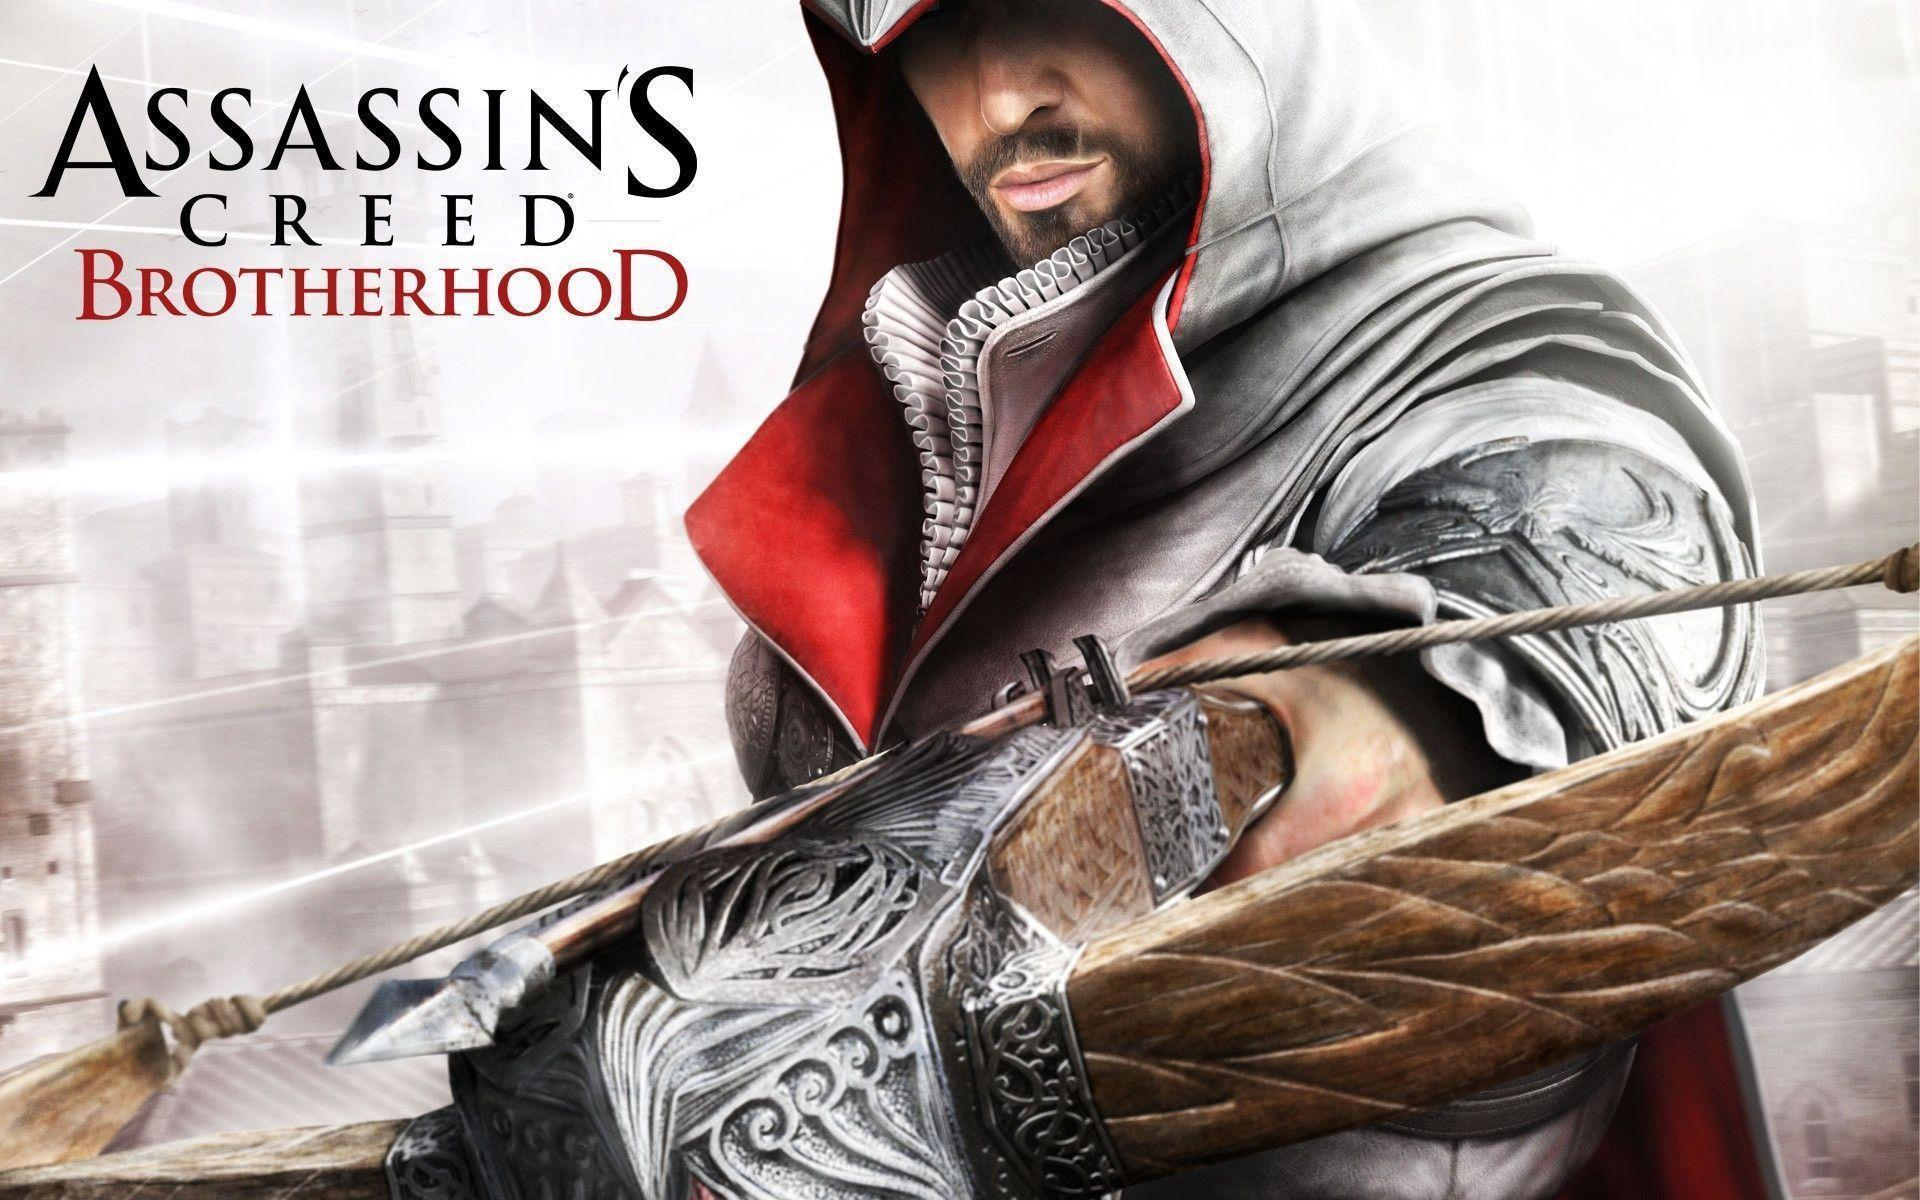 51 Assassin&Creed: Brotherhood Wallpapers